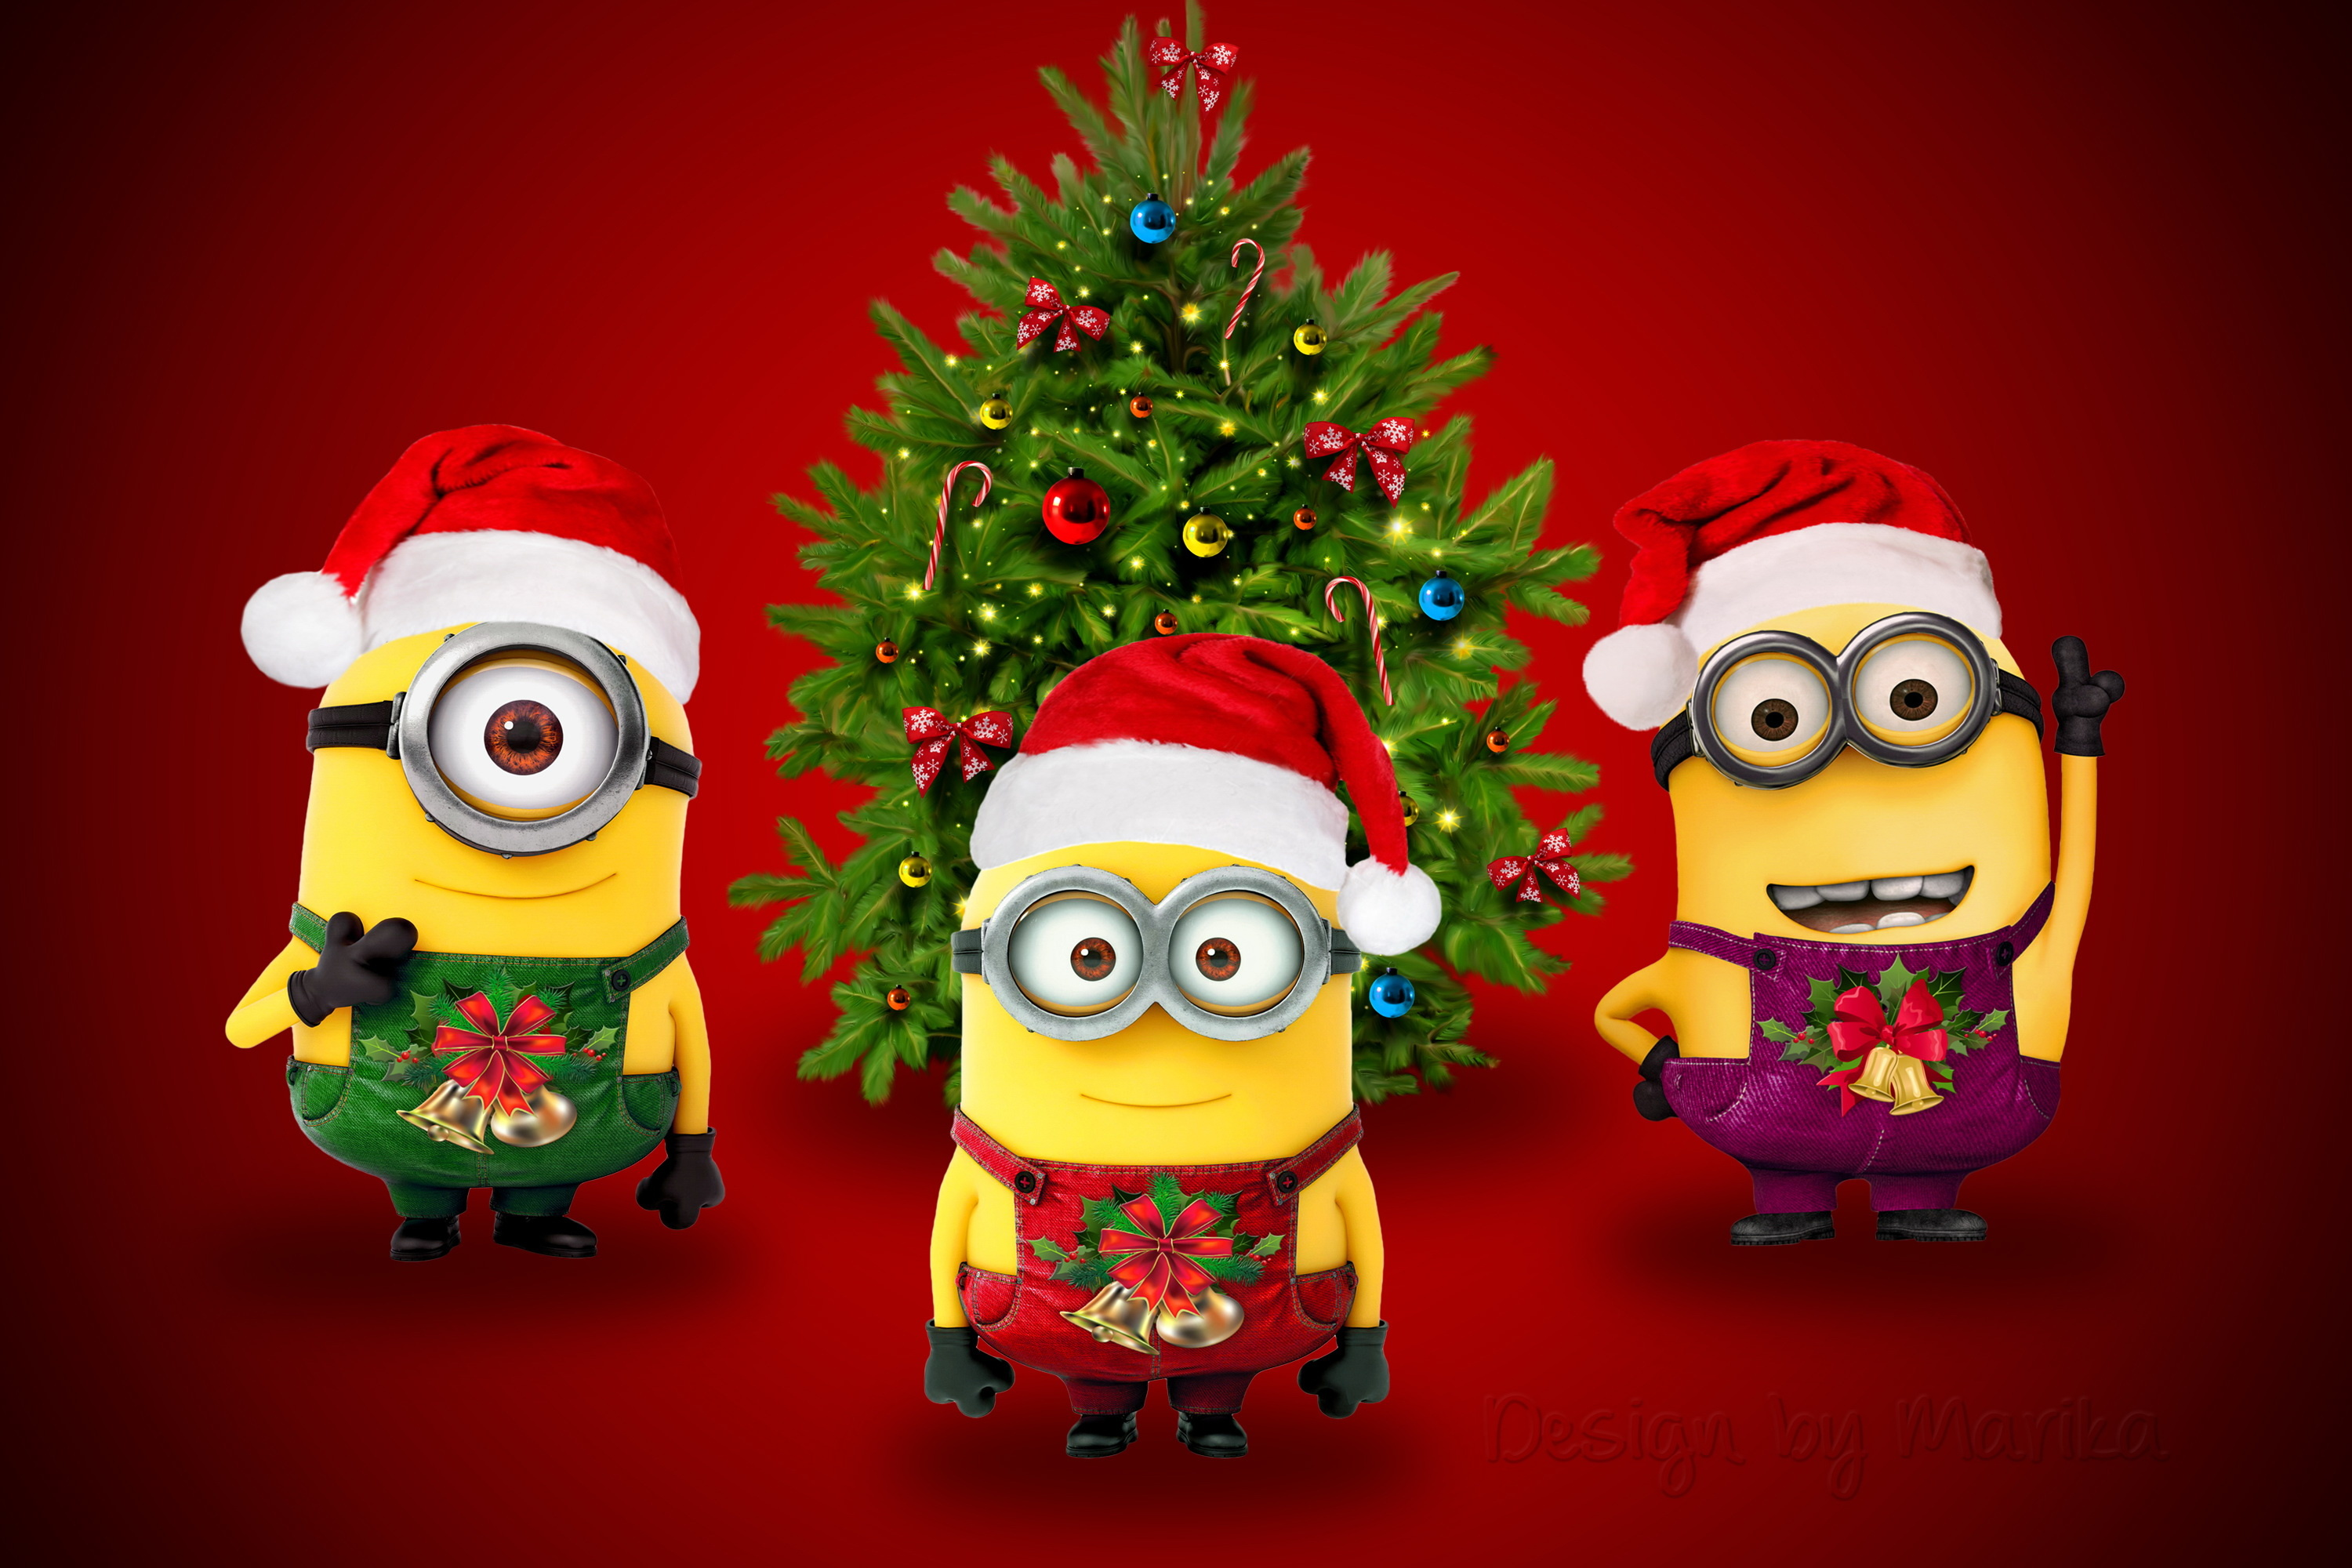 despicable me images minions wallpaper hd wallpaper and background photos - Christmas Minions